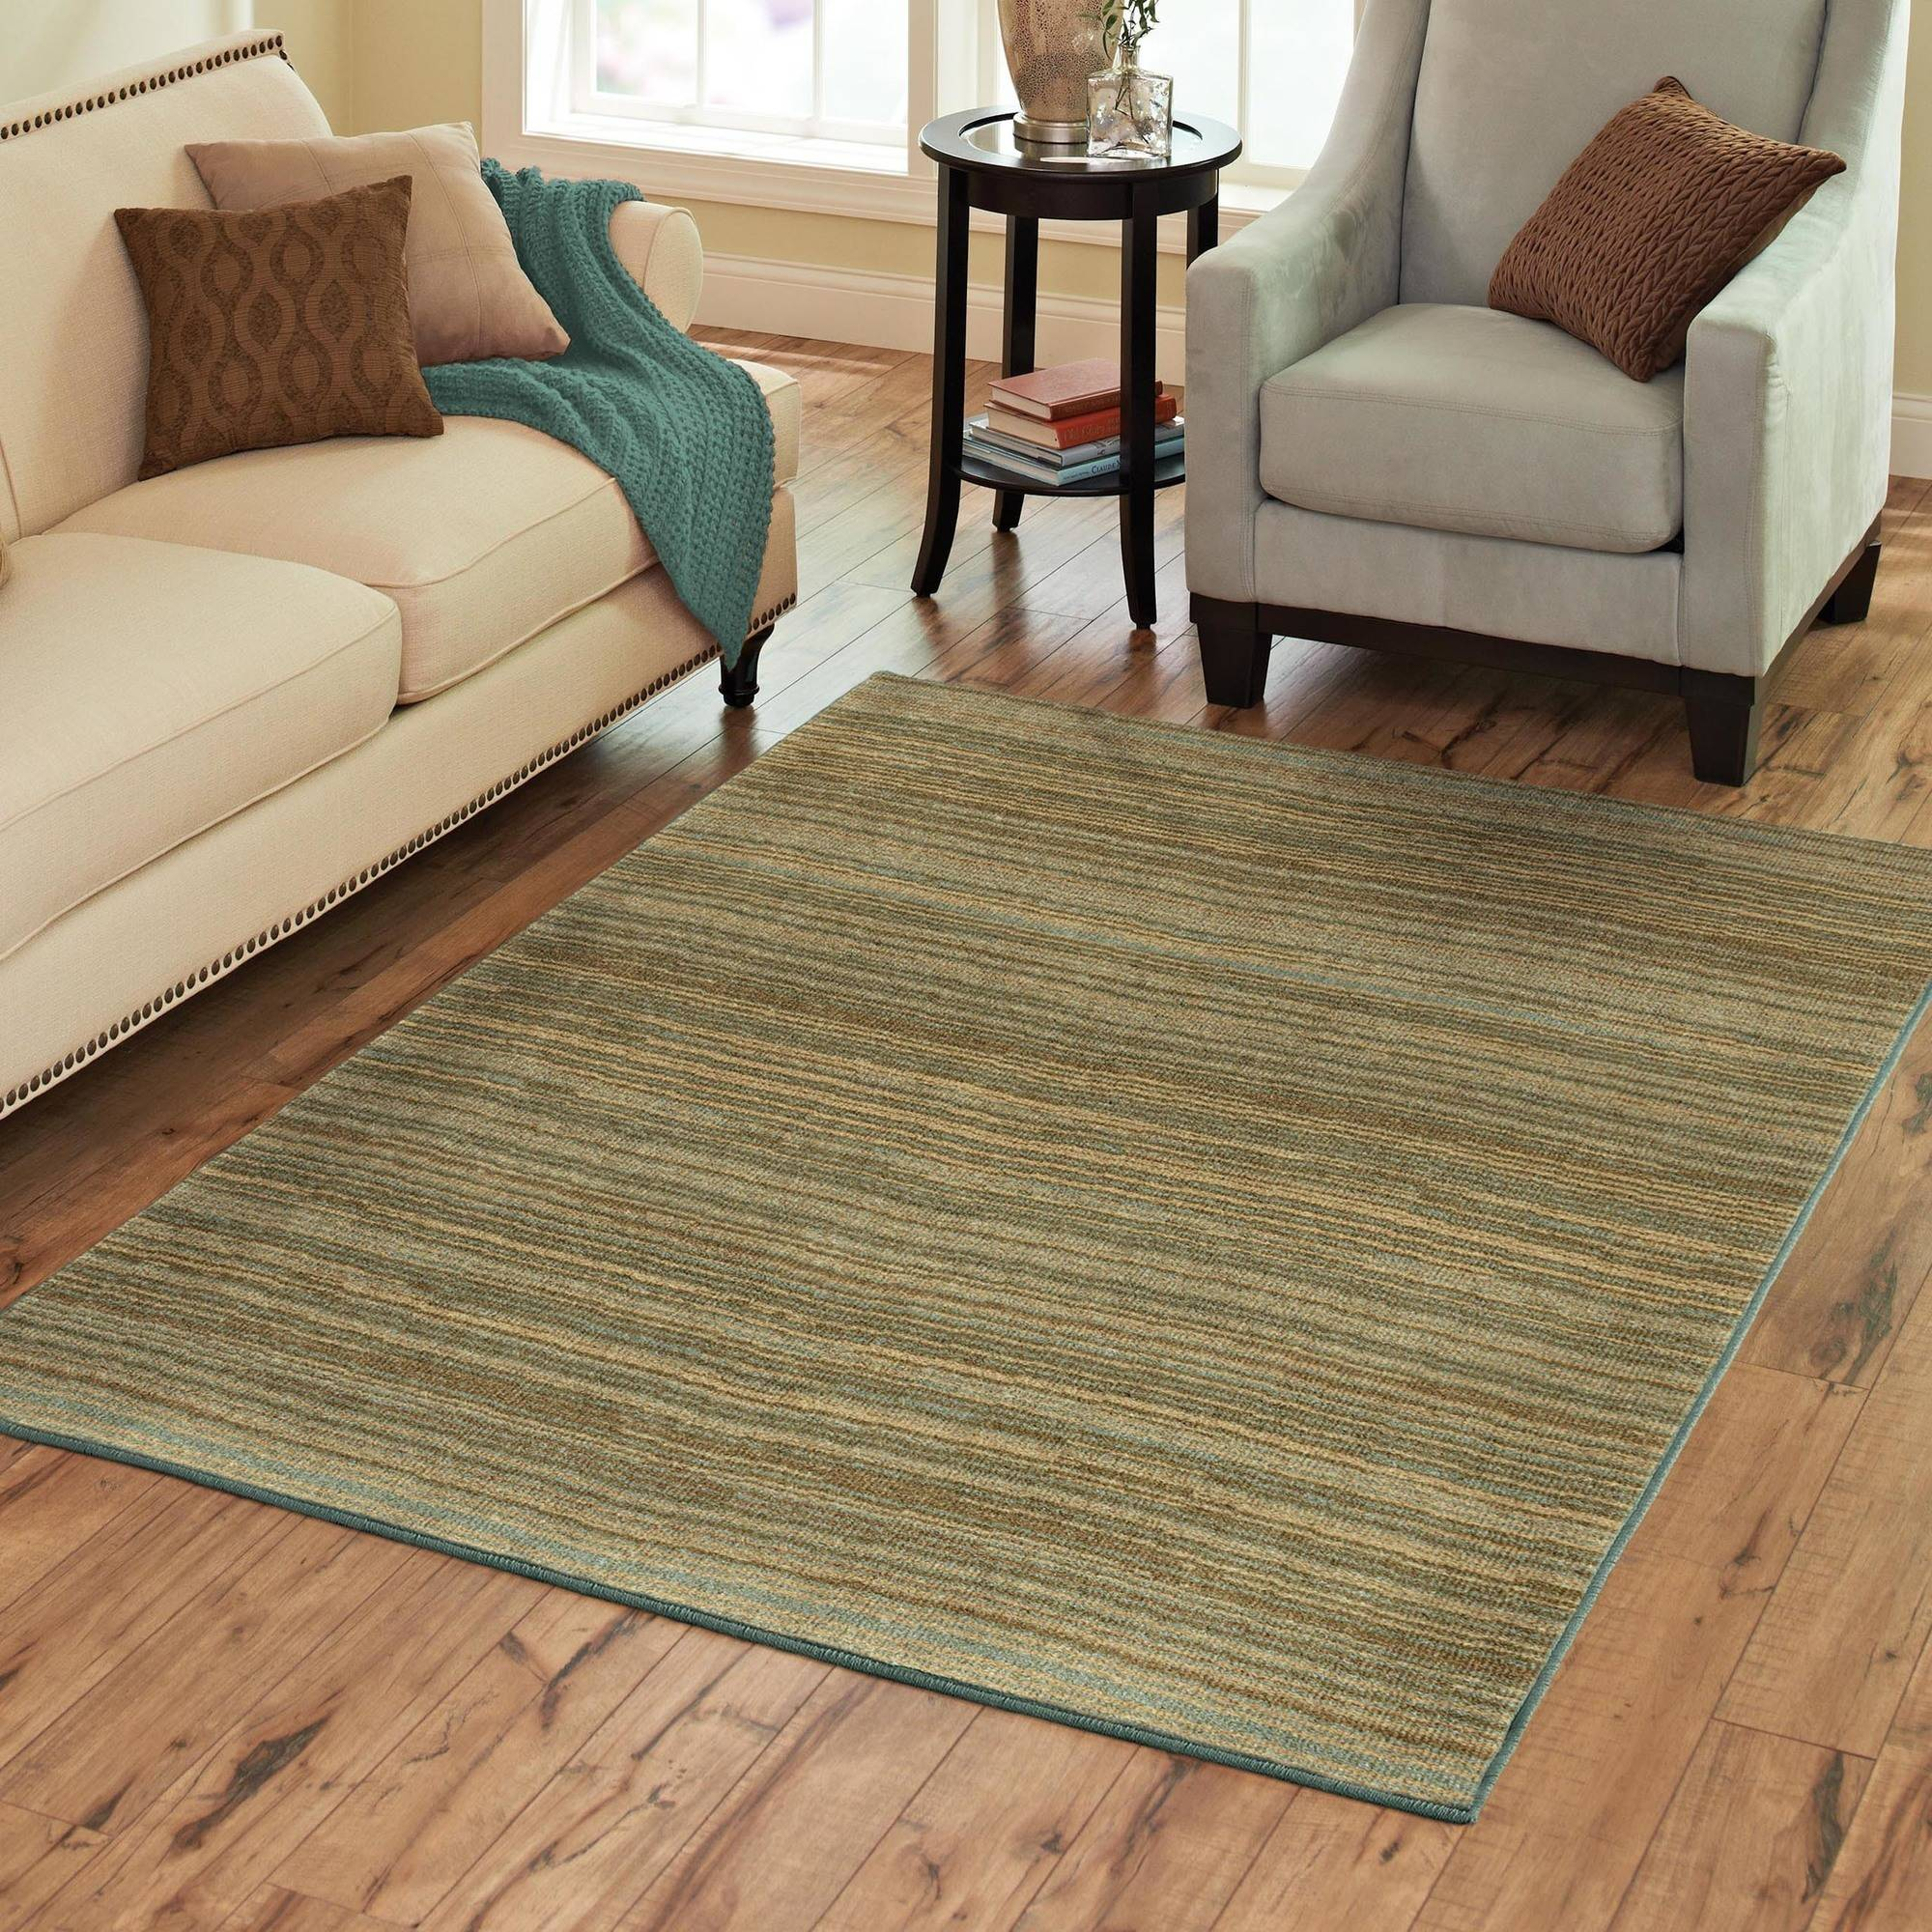 Better Homes and Gardens Multifield Area Rug or Runner